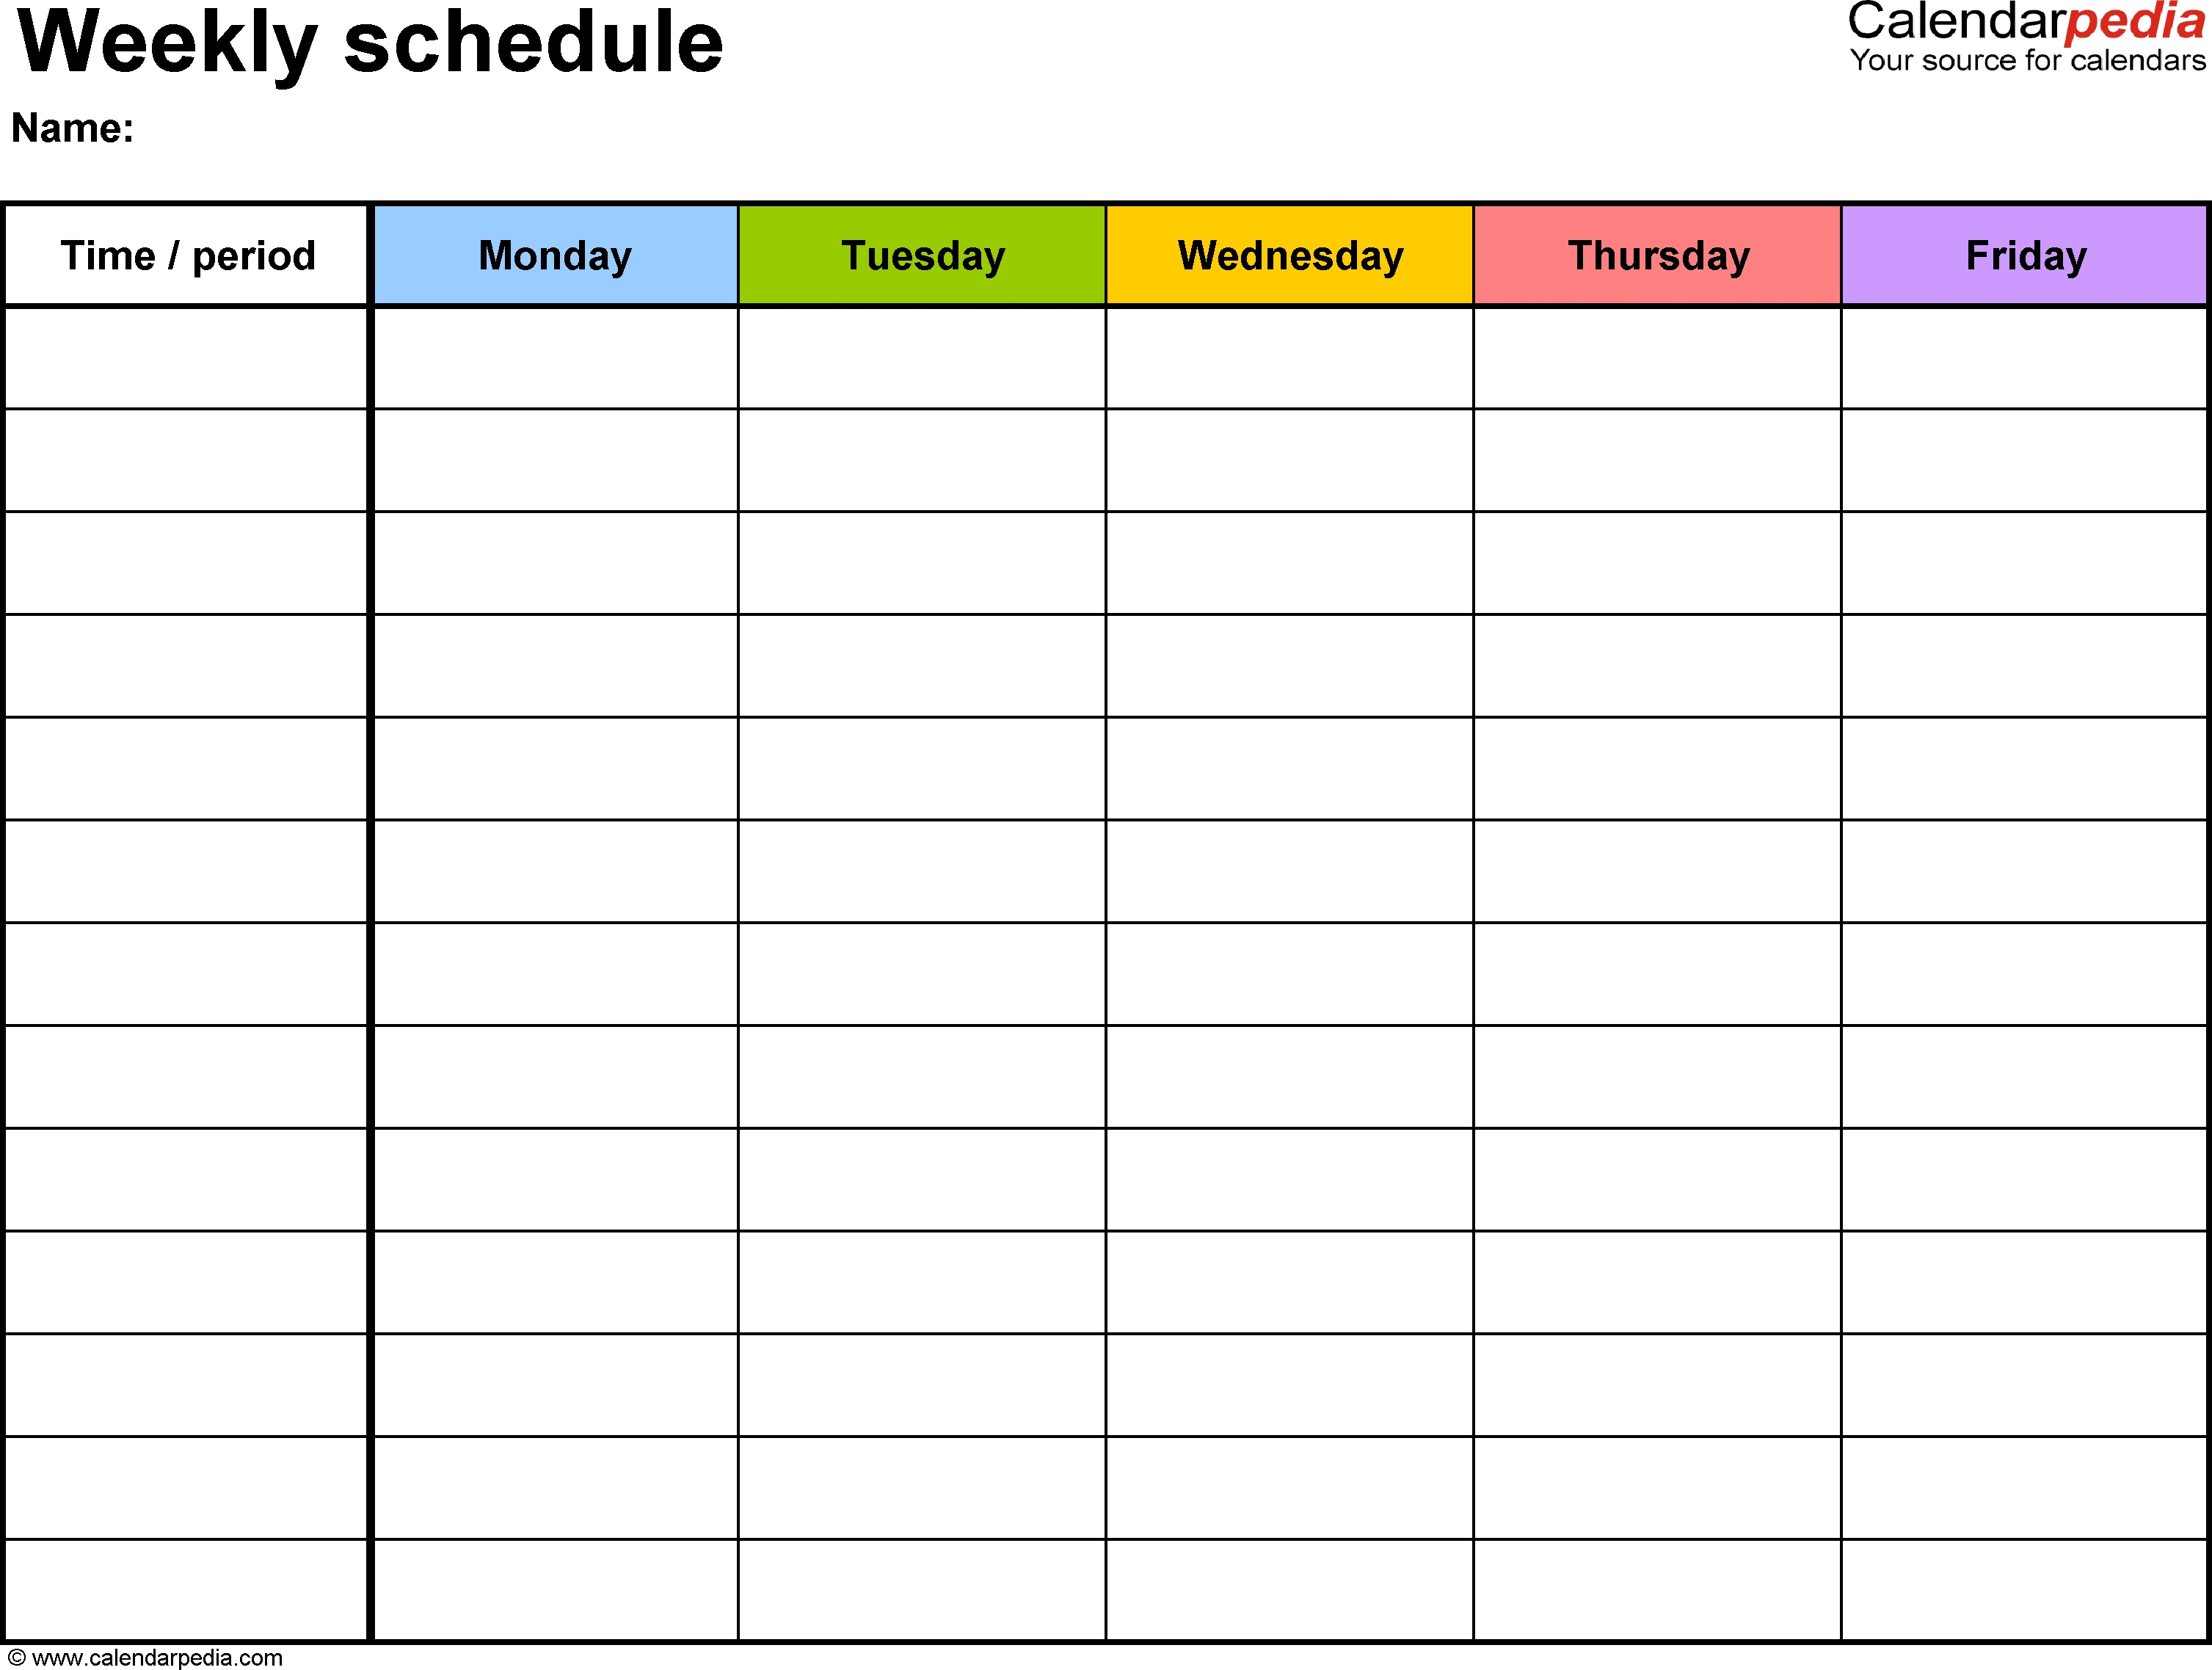 Free Weekly Schedule Templates For Excel - 18 Templates  Daily Calendars Free Printable Editable